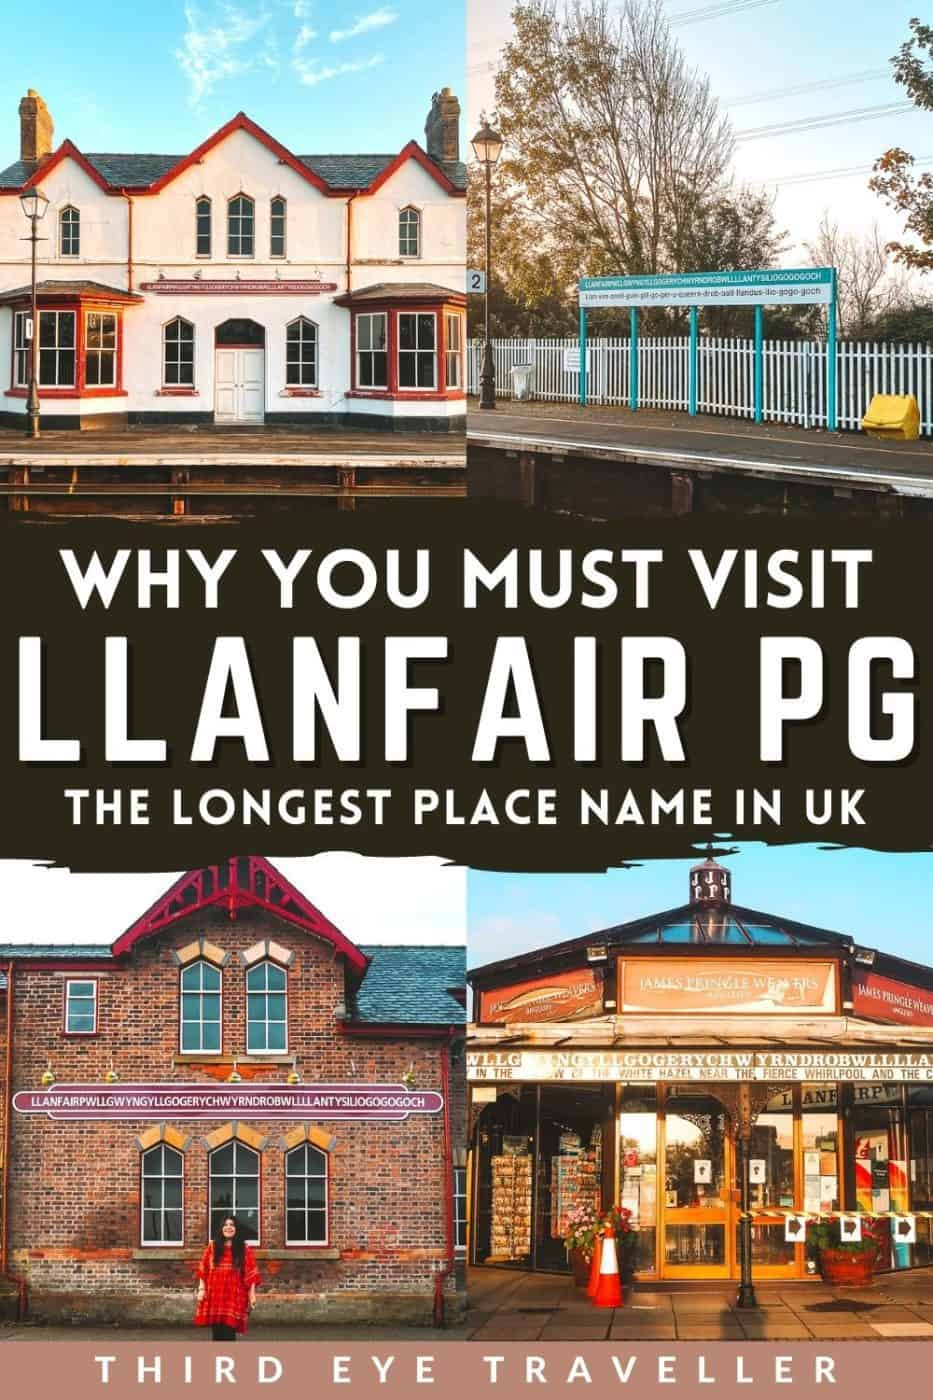 Llanfair PG Anglesey Longest place name in Wales